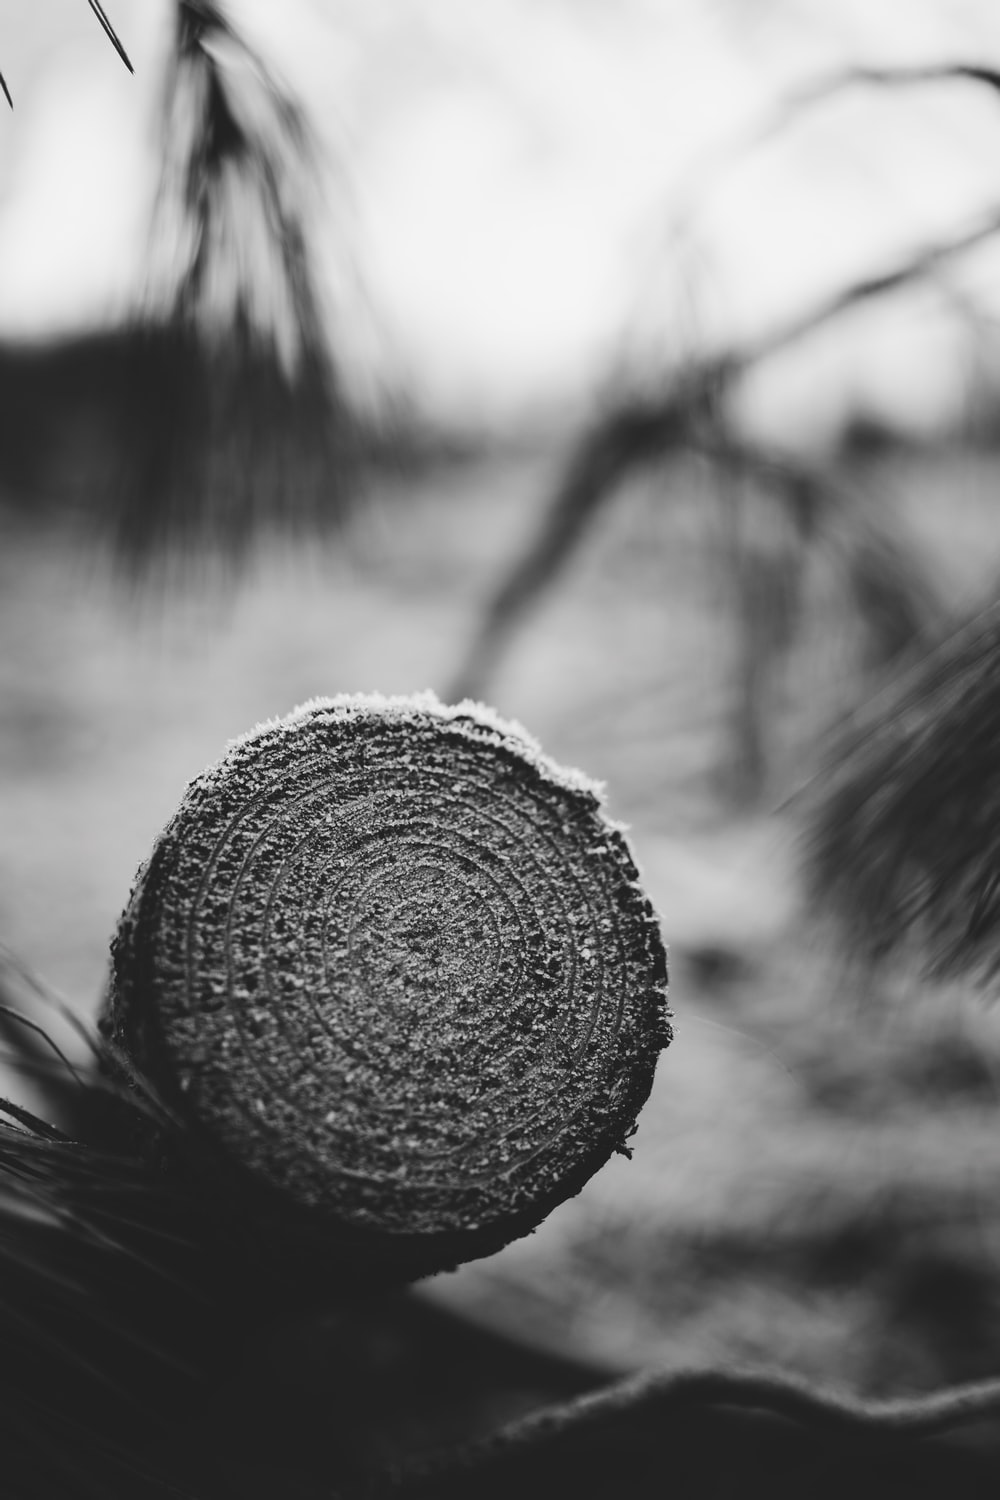 grayscale photo of round fruit